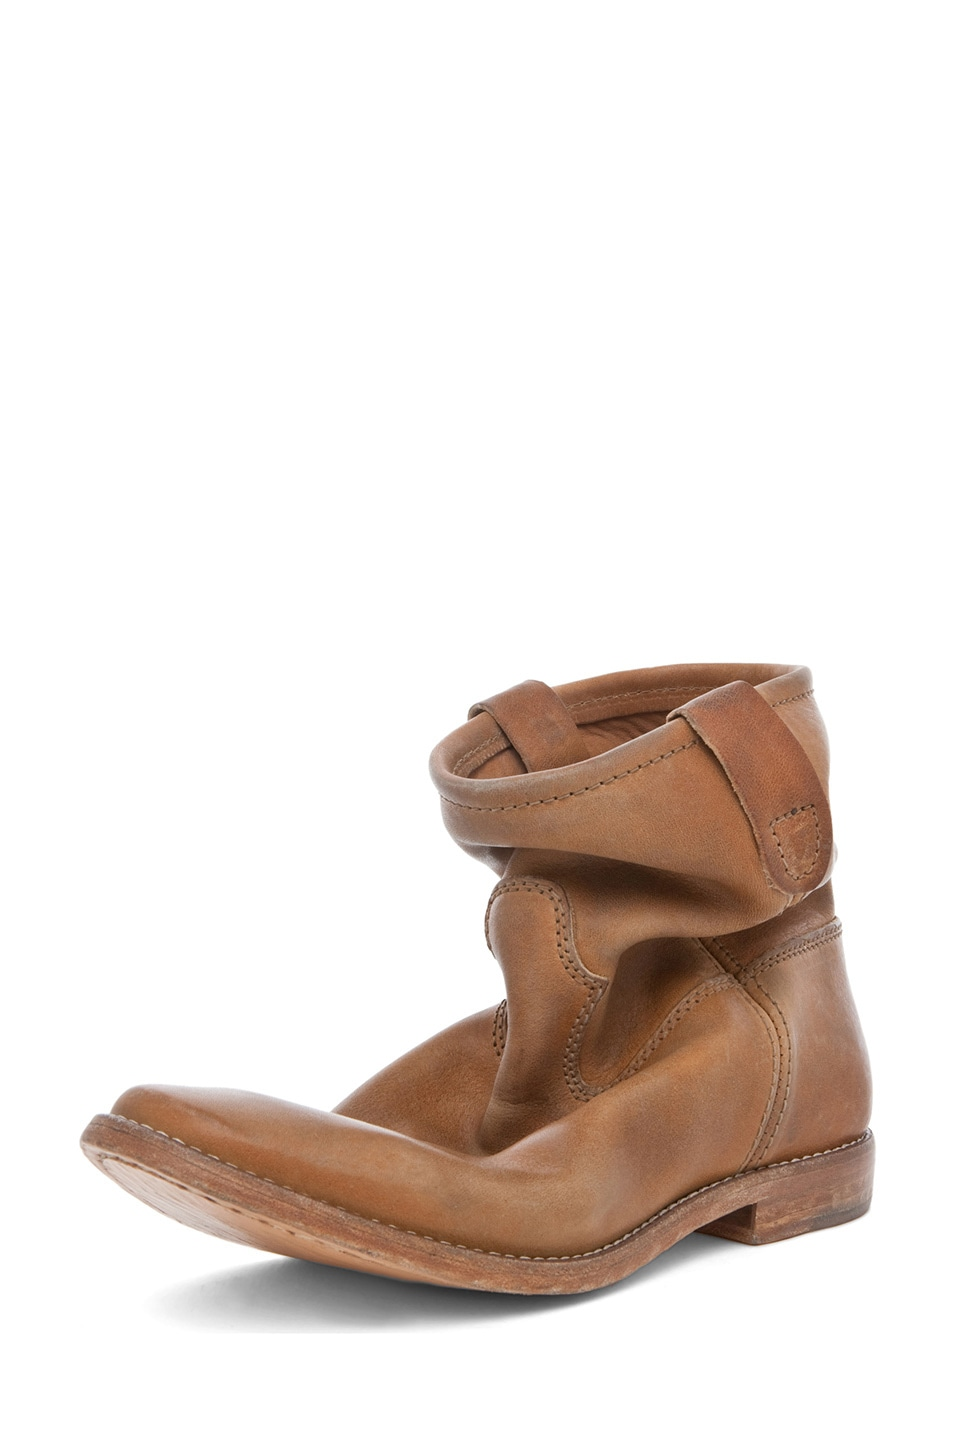 Image 2 of Isabel Marant Jenny Calfskin Leather Boots in Naturel